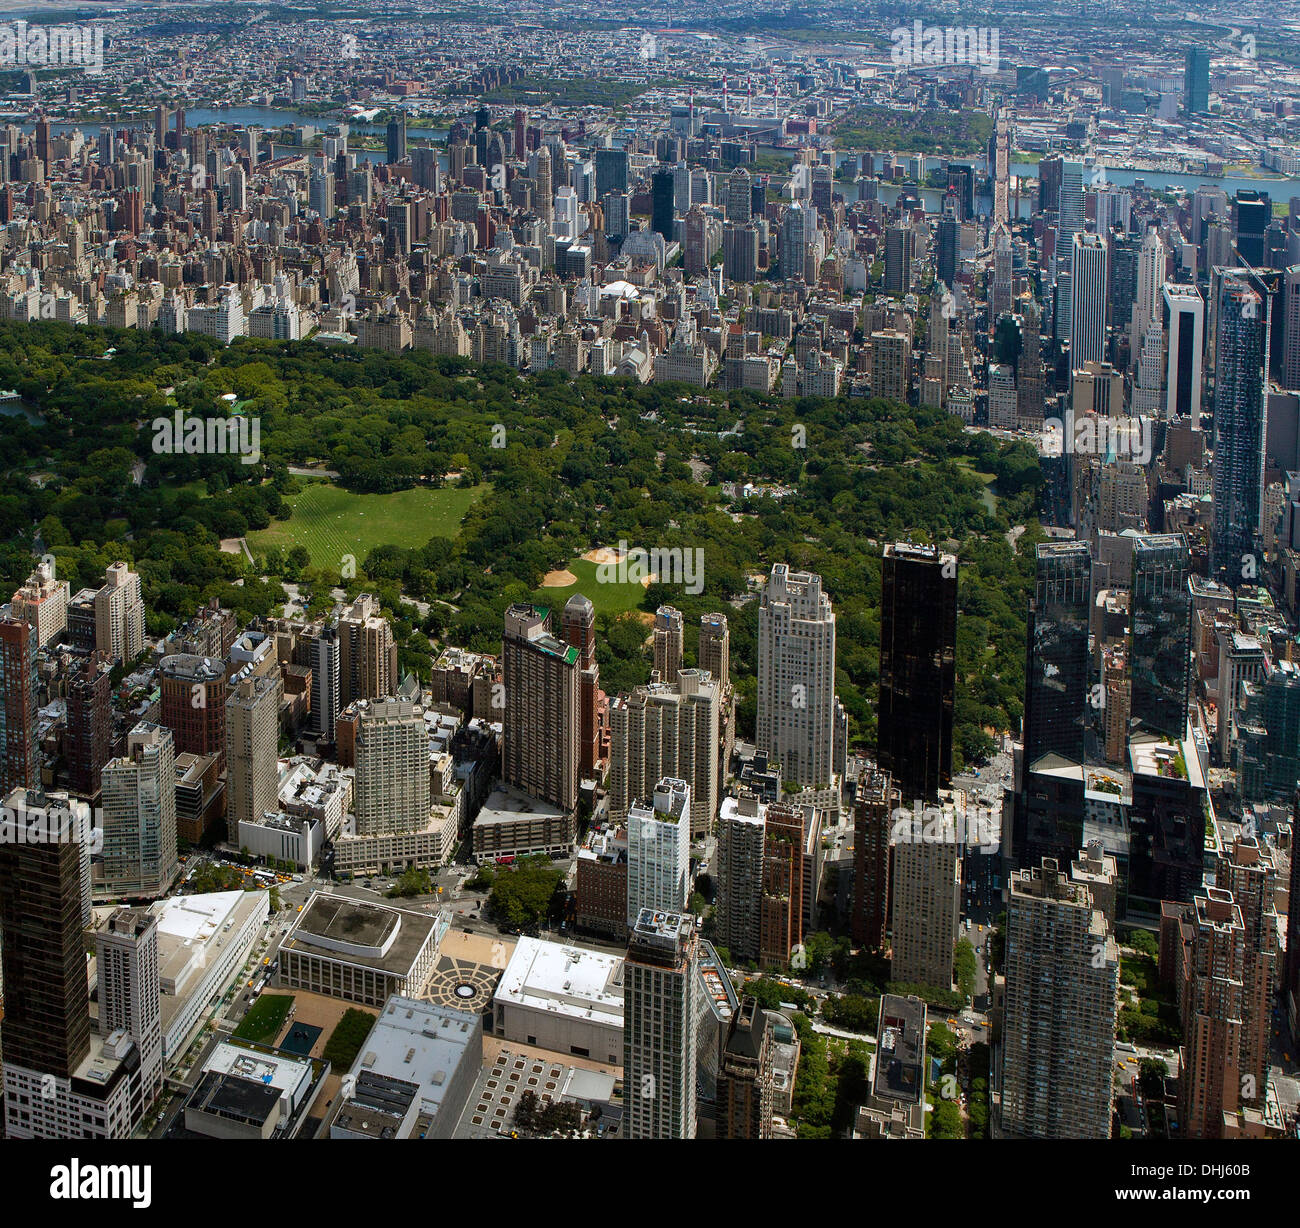 aerial photograph Lincoln Center, Avery Fisher Hall, Central Park, Manhattan, New York City - Stock Image